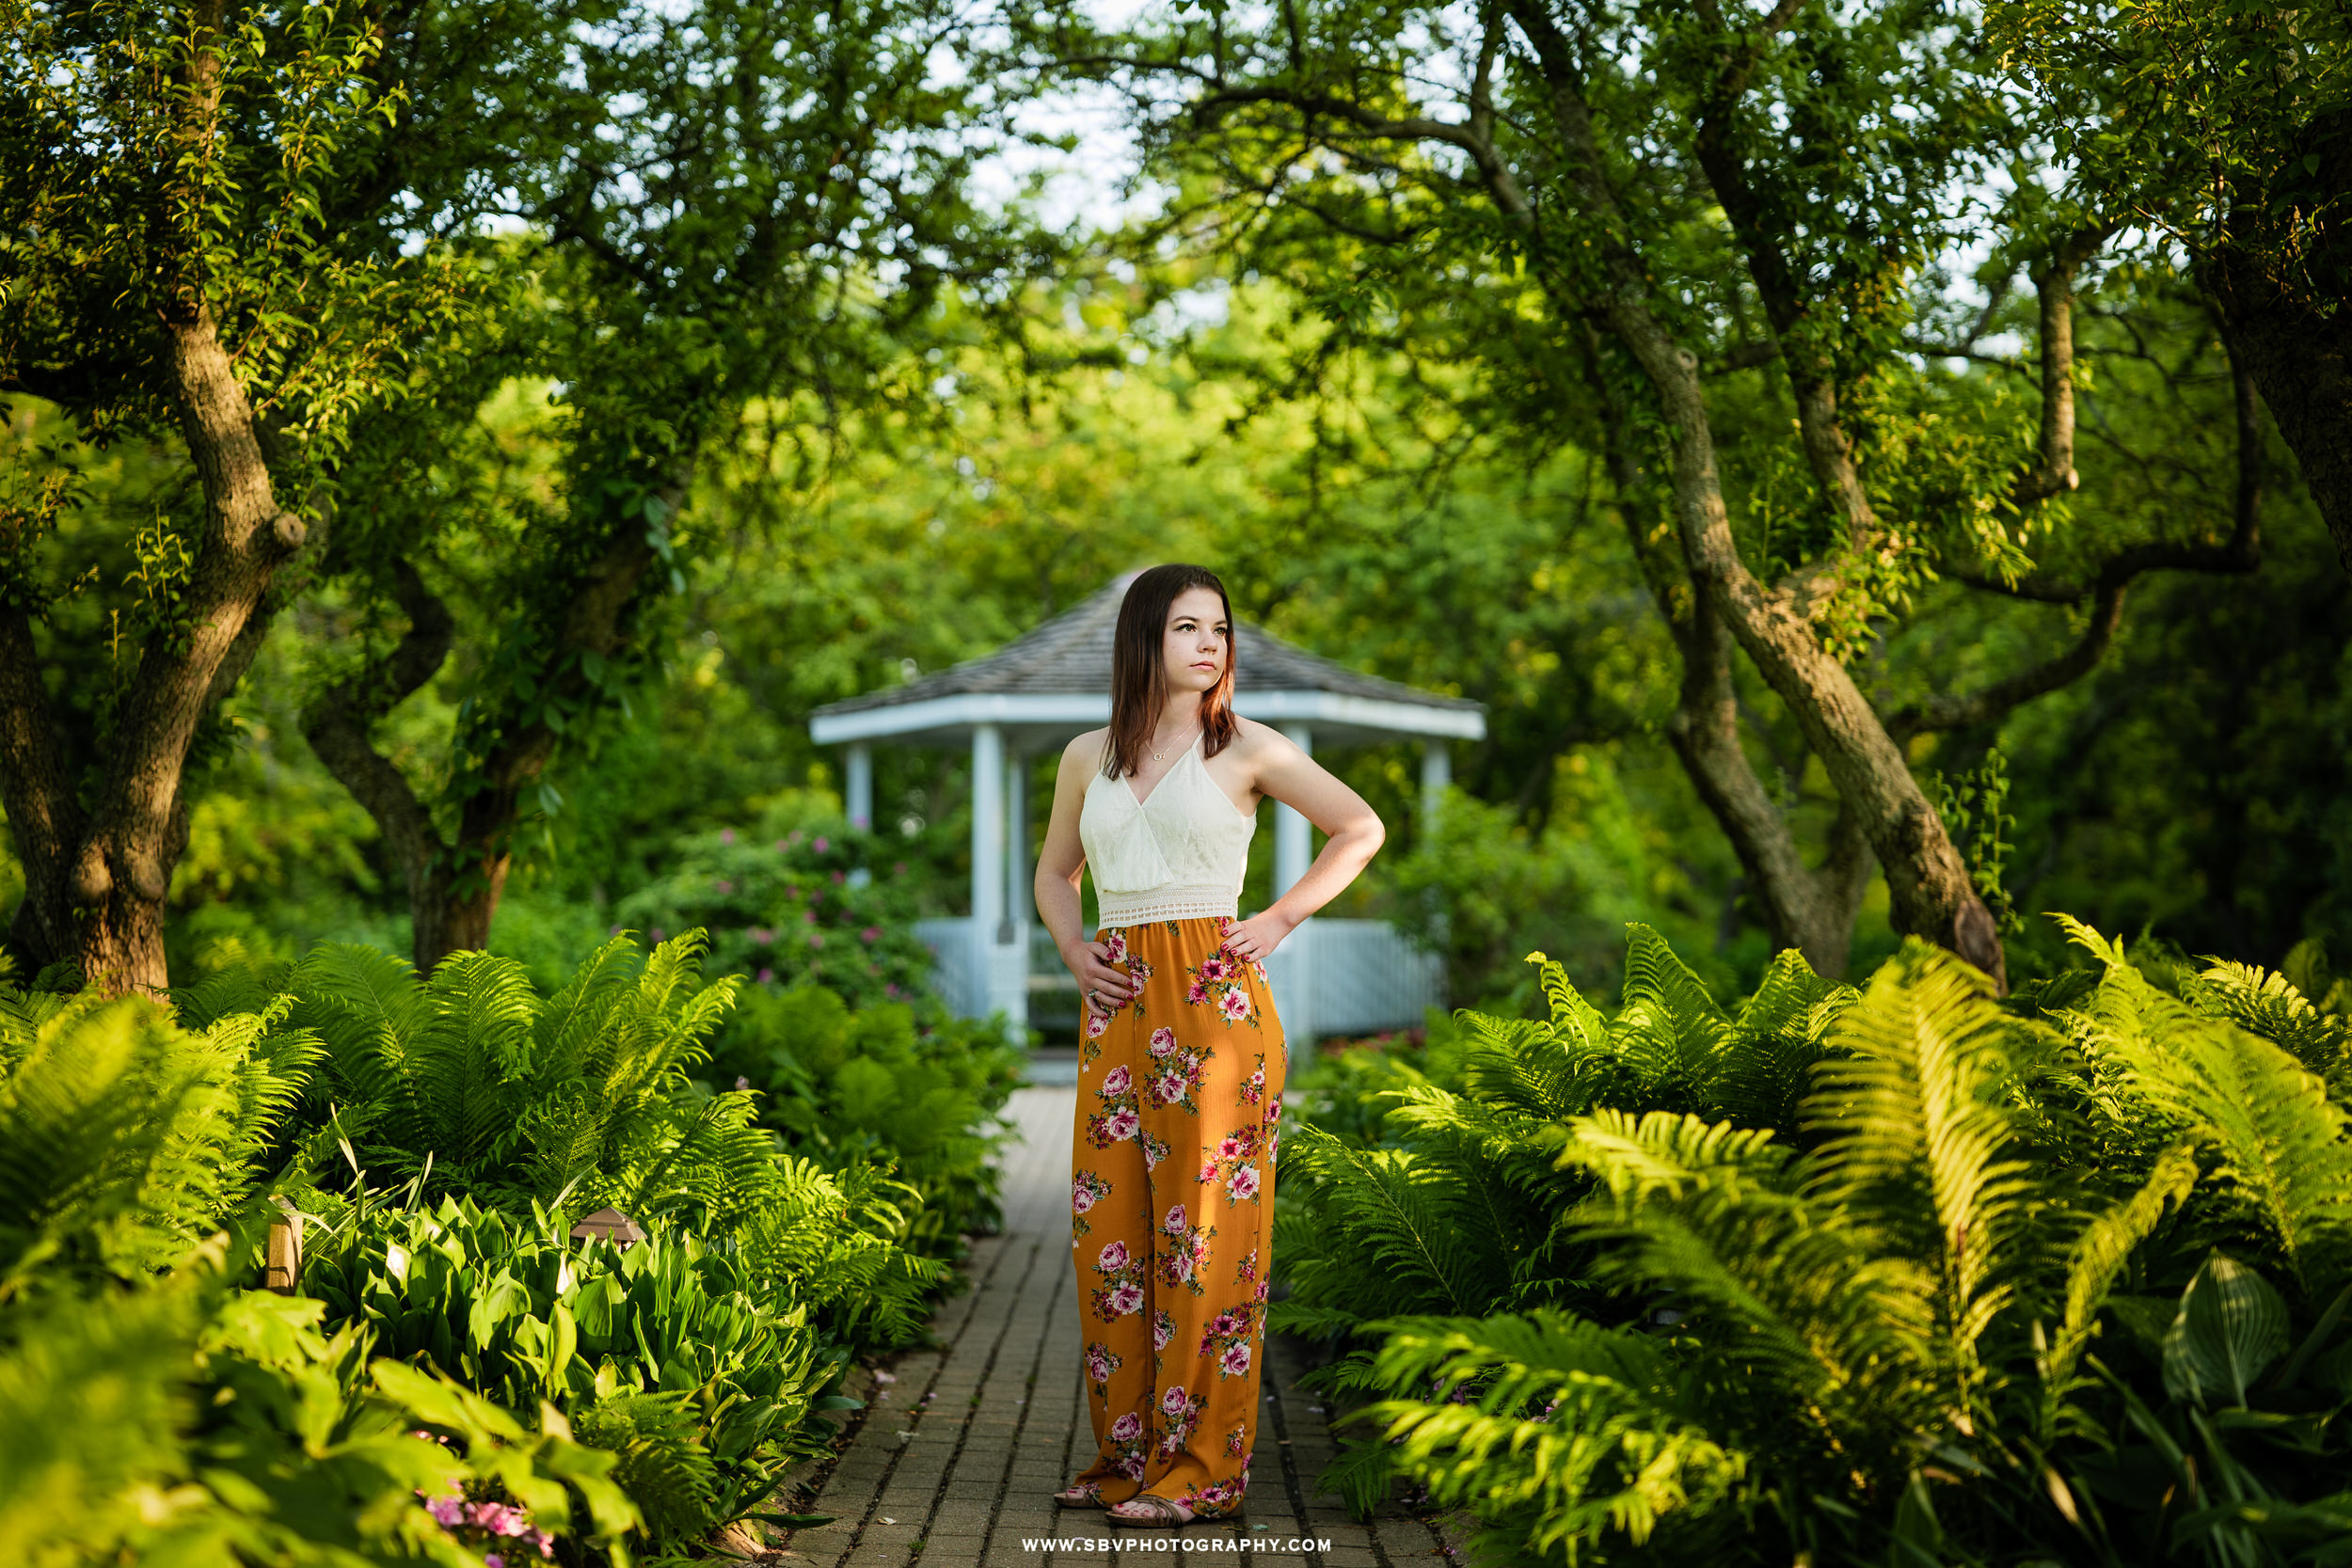 Senior girl at Ogden Garden gazebo walkway.